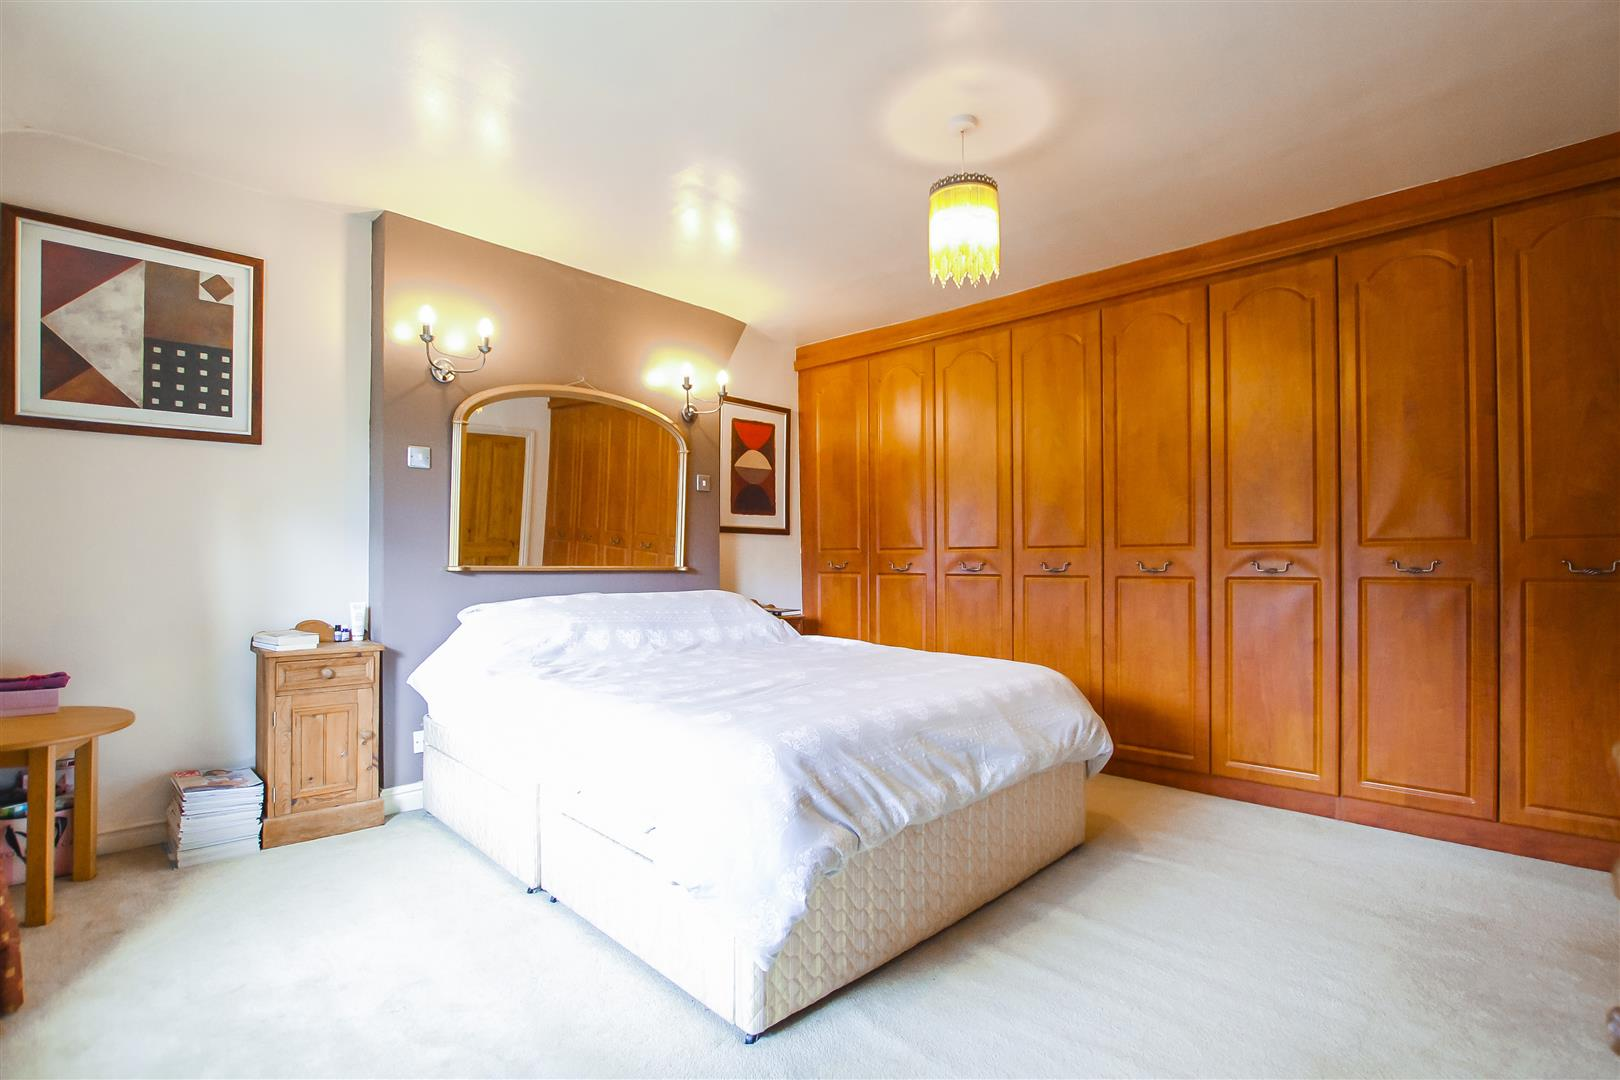 4 Bedroom Farmhouse For Sale - Image 6